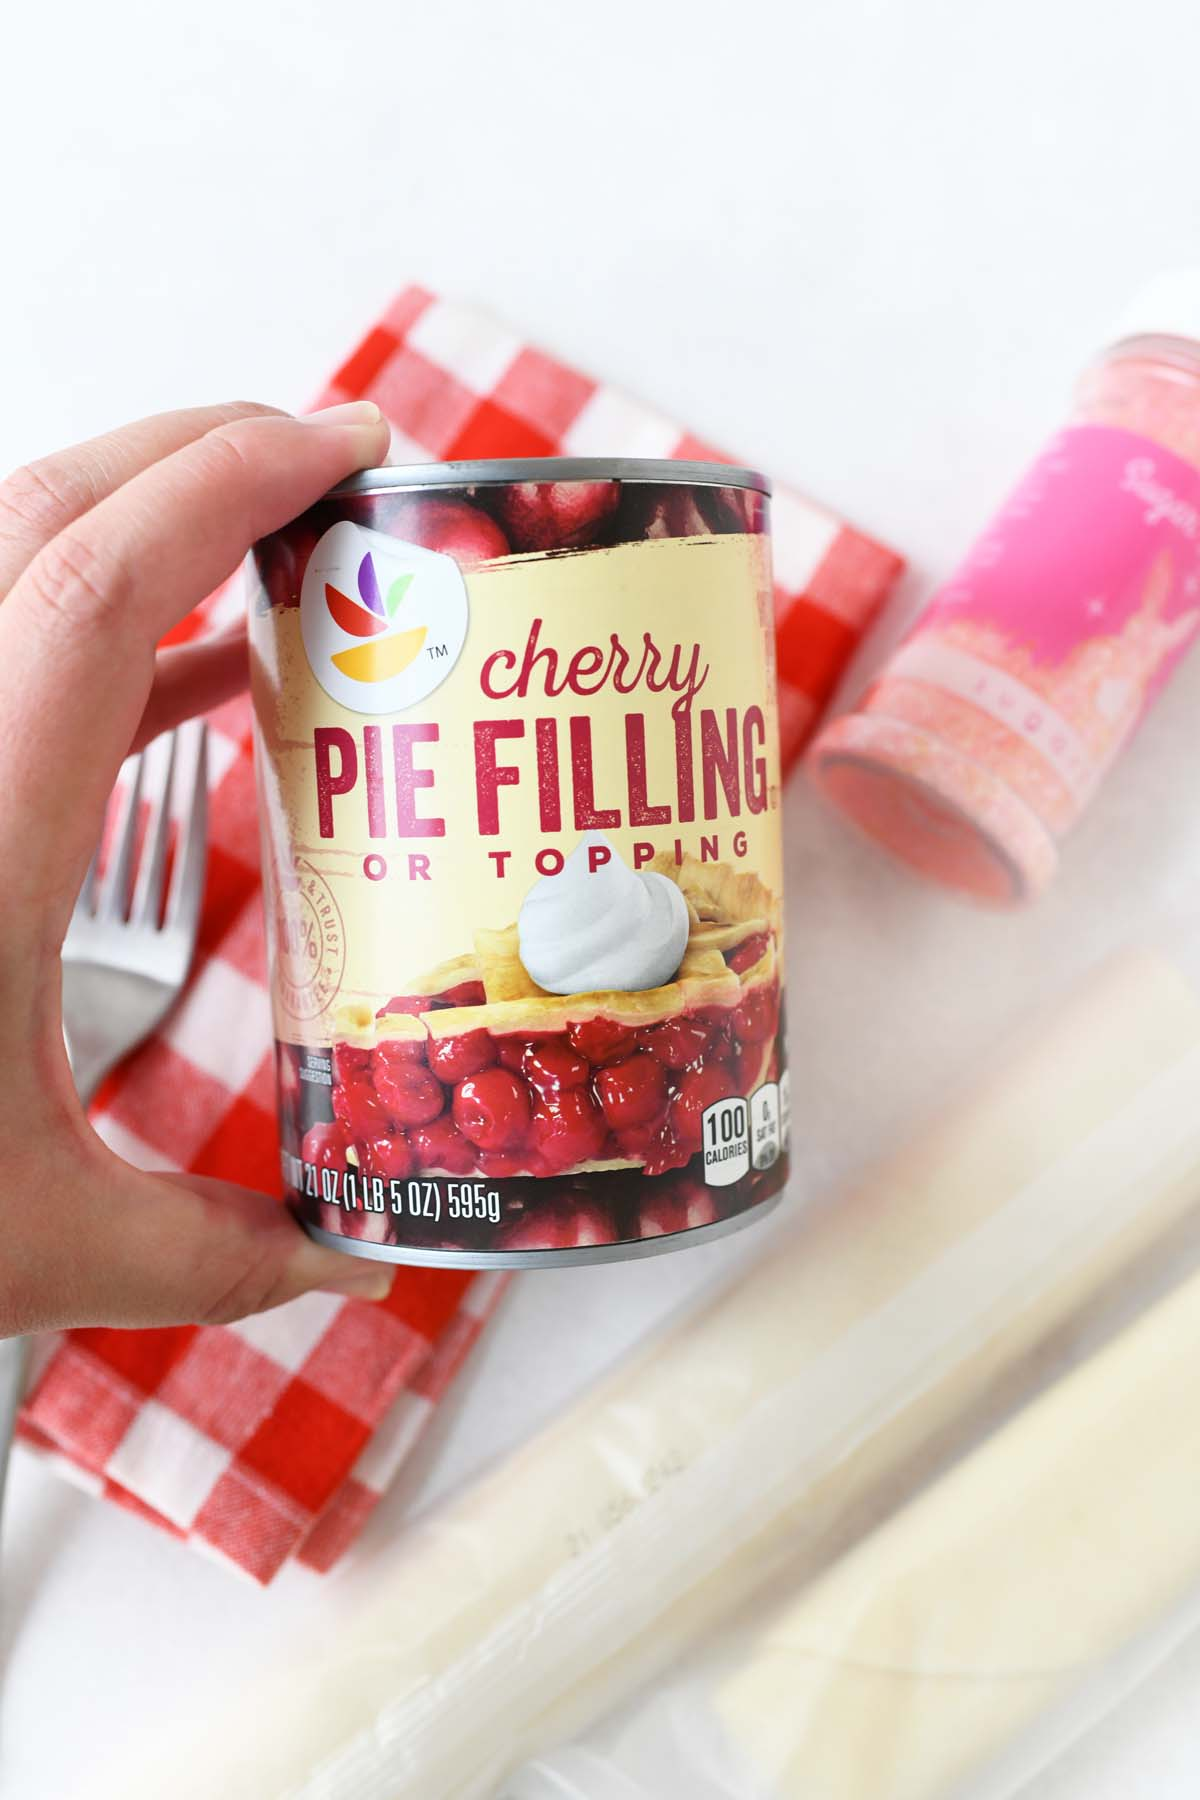 A hand holding a can of cherry pie filling.